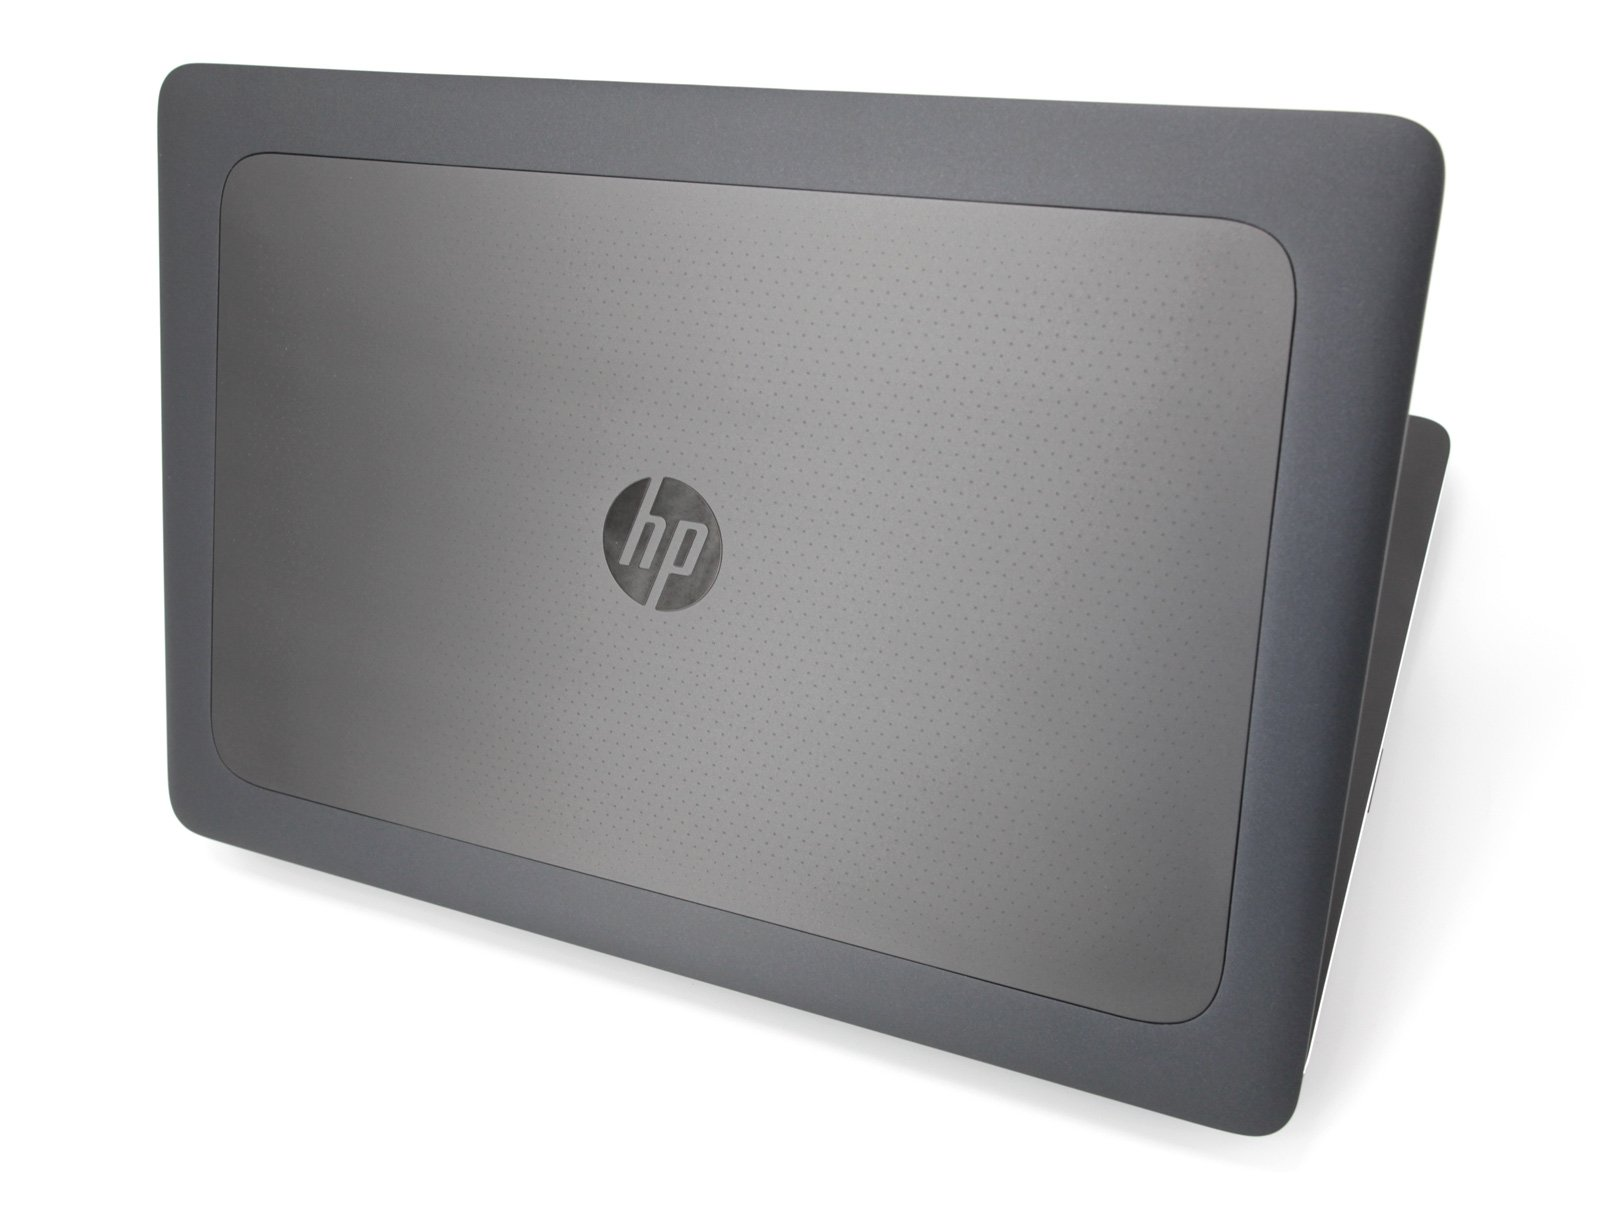 HP ZBook 17 G3 Laptop: Core i7-6820HQ M4000M, 16GB RAM, 512GB+1TB Warranty - CruiseTech